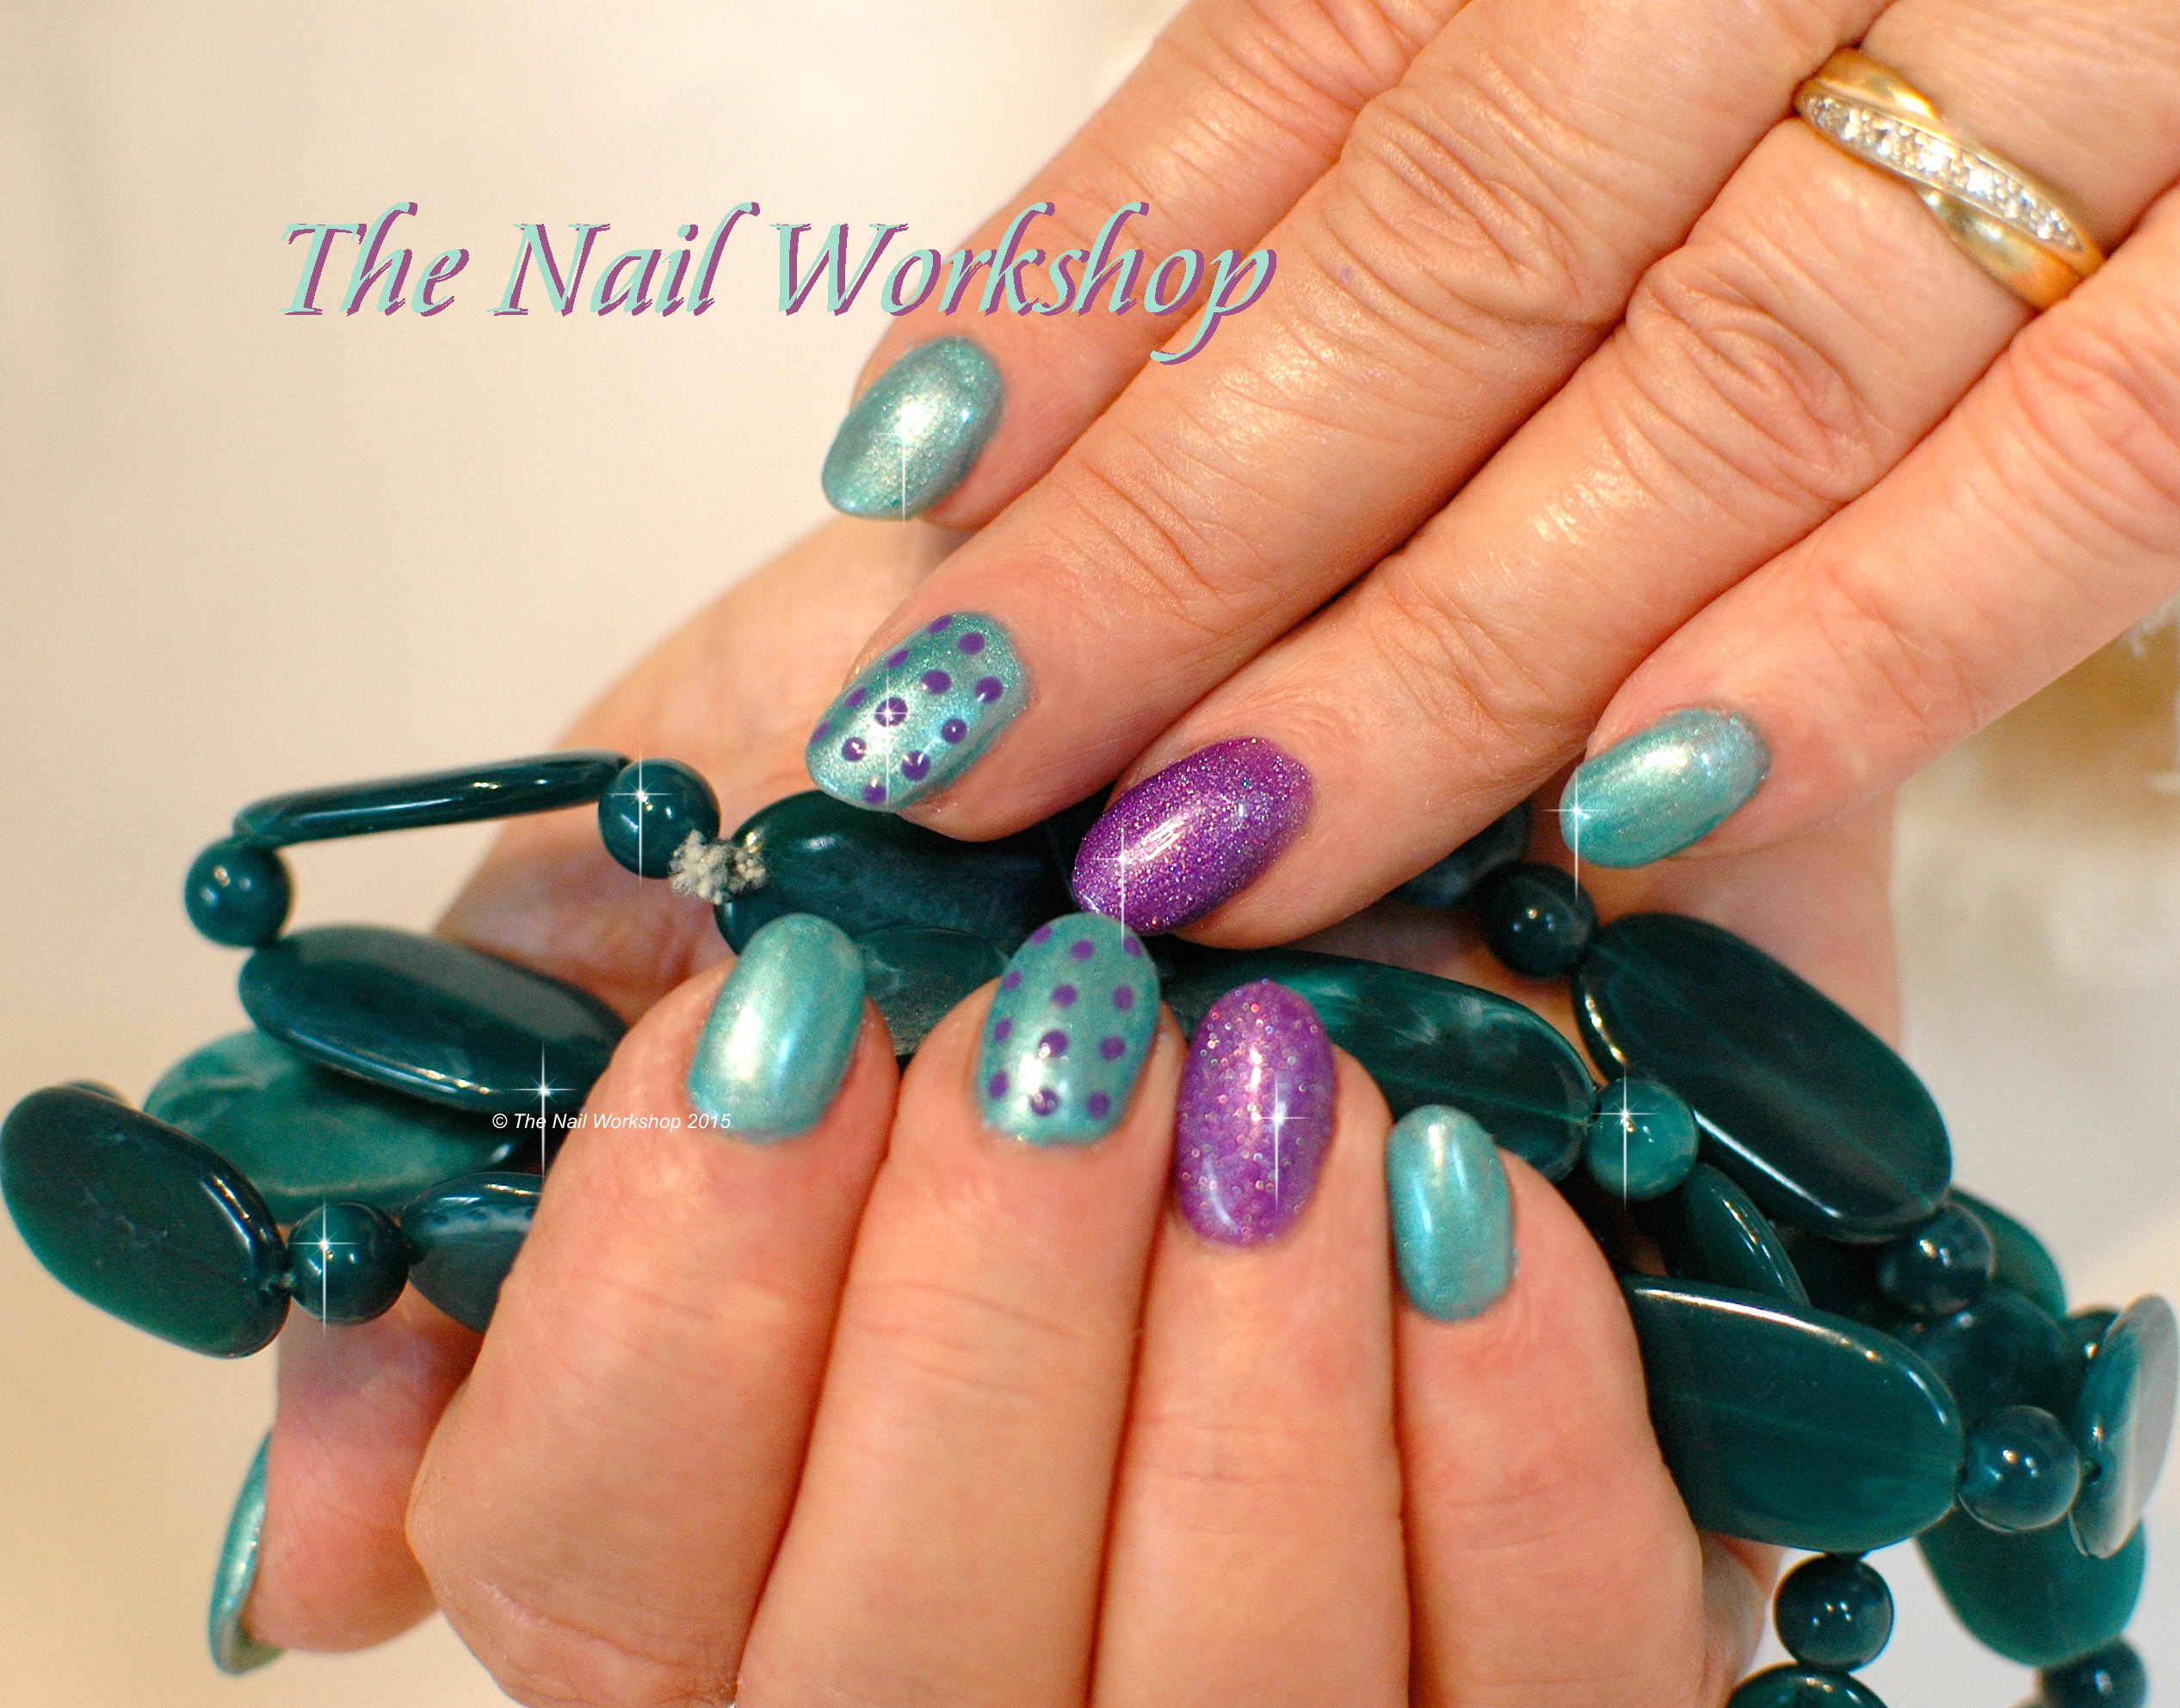 Nail extension training , Nail Trainin g Courses, Okeford Fitzpaine, Dorset